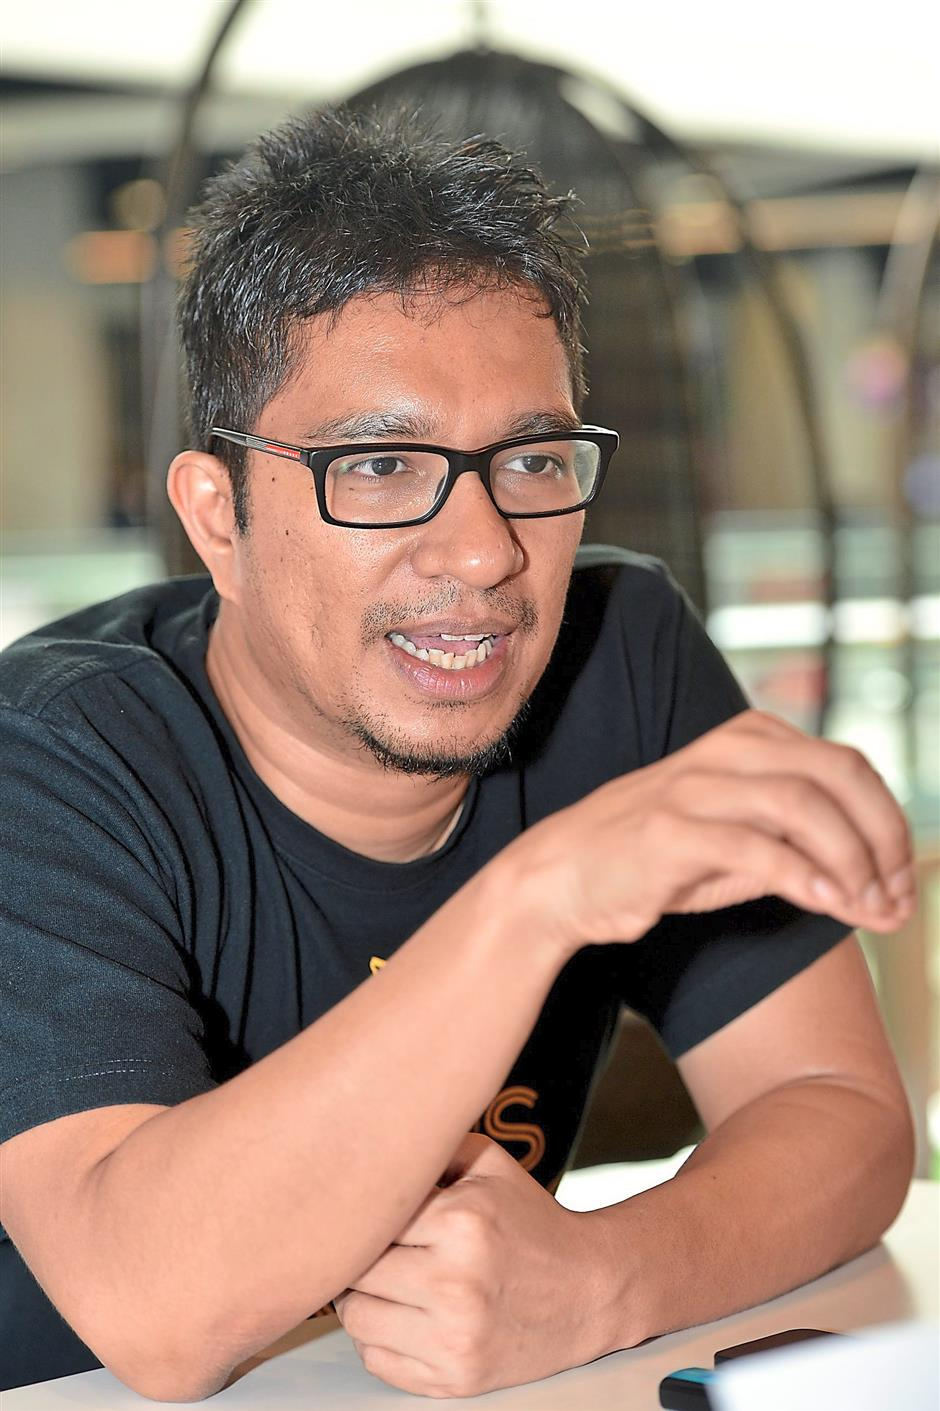 Amir is realising a long-held dream with Kedai Fixi. Photo: RAJA FAISAL HISHAN/The Star